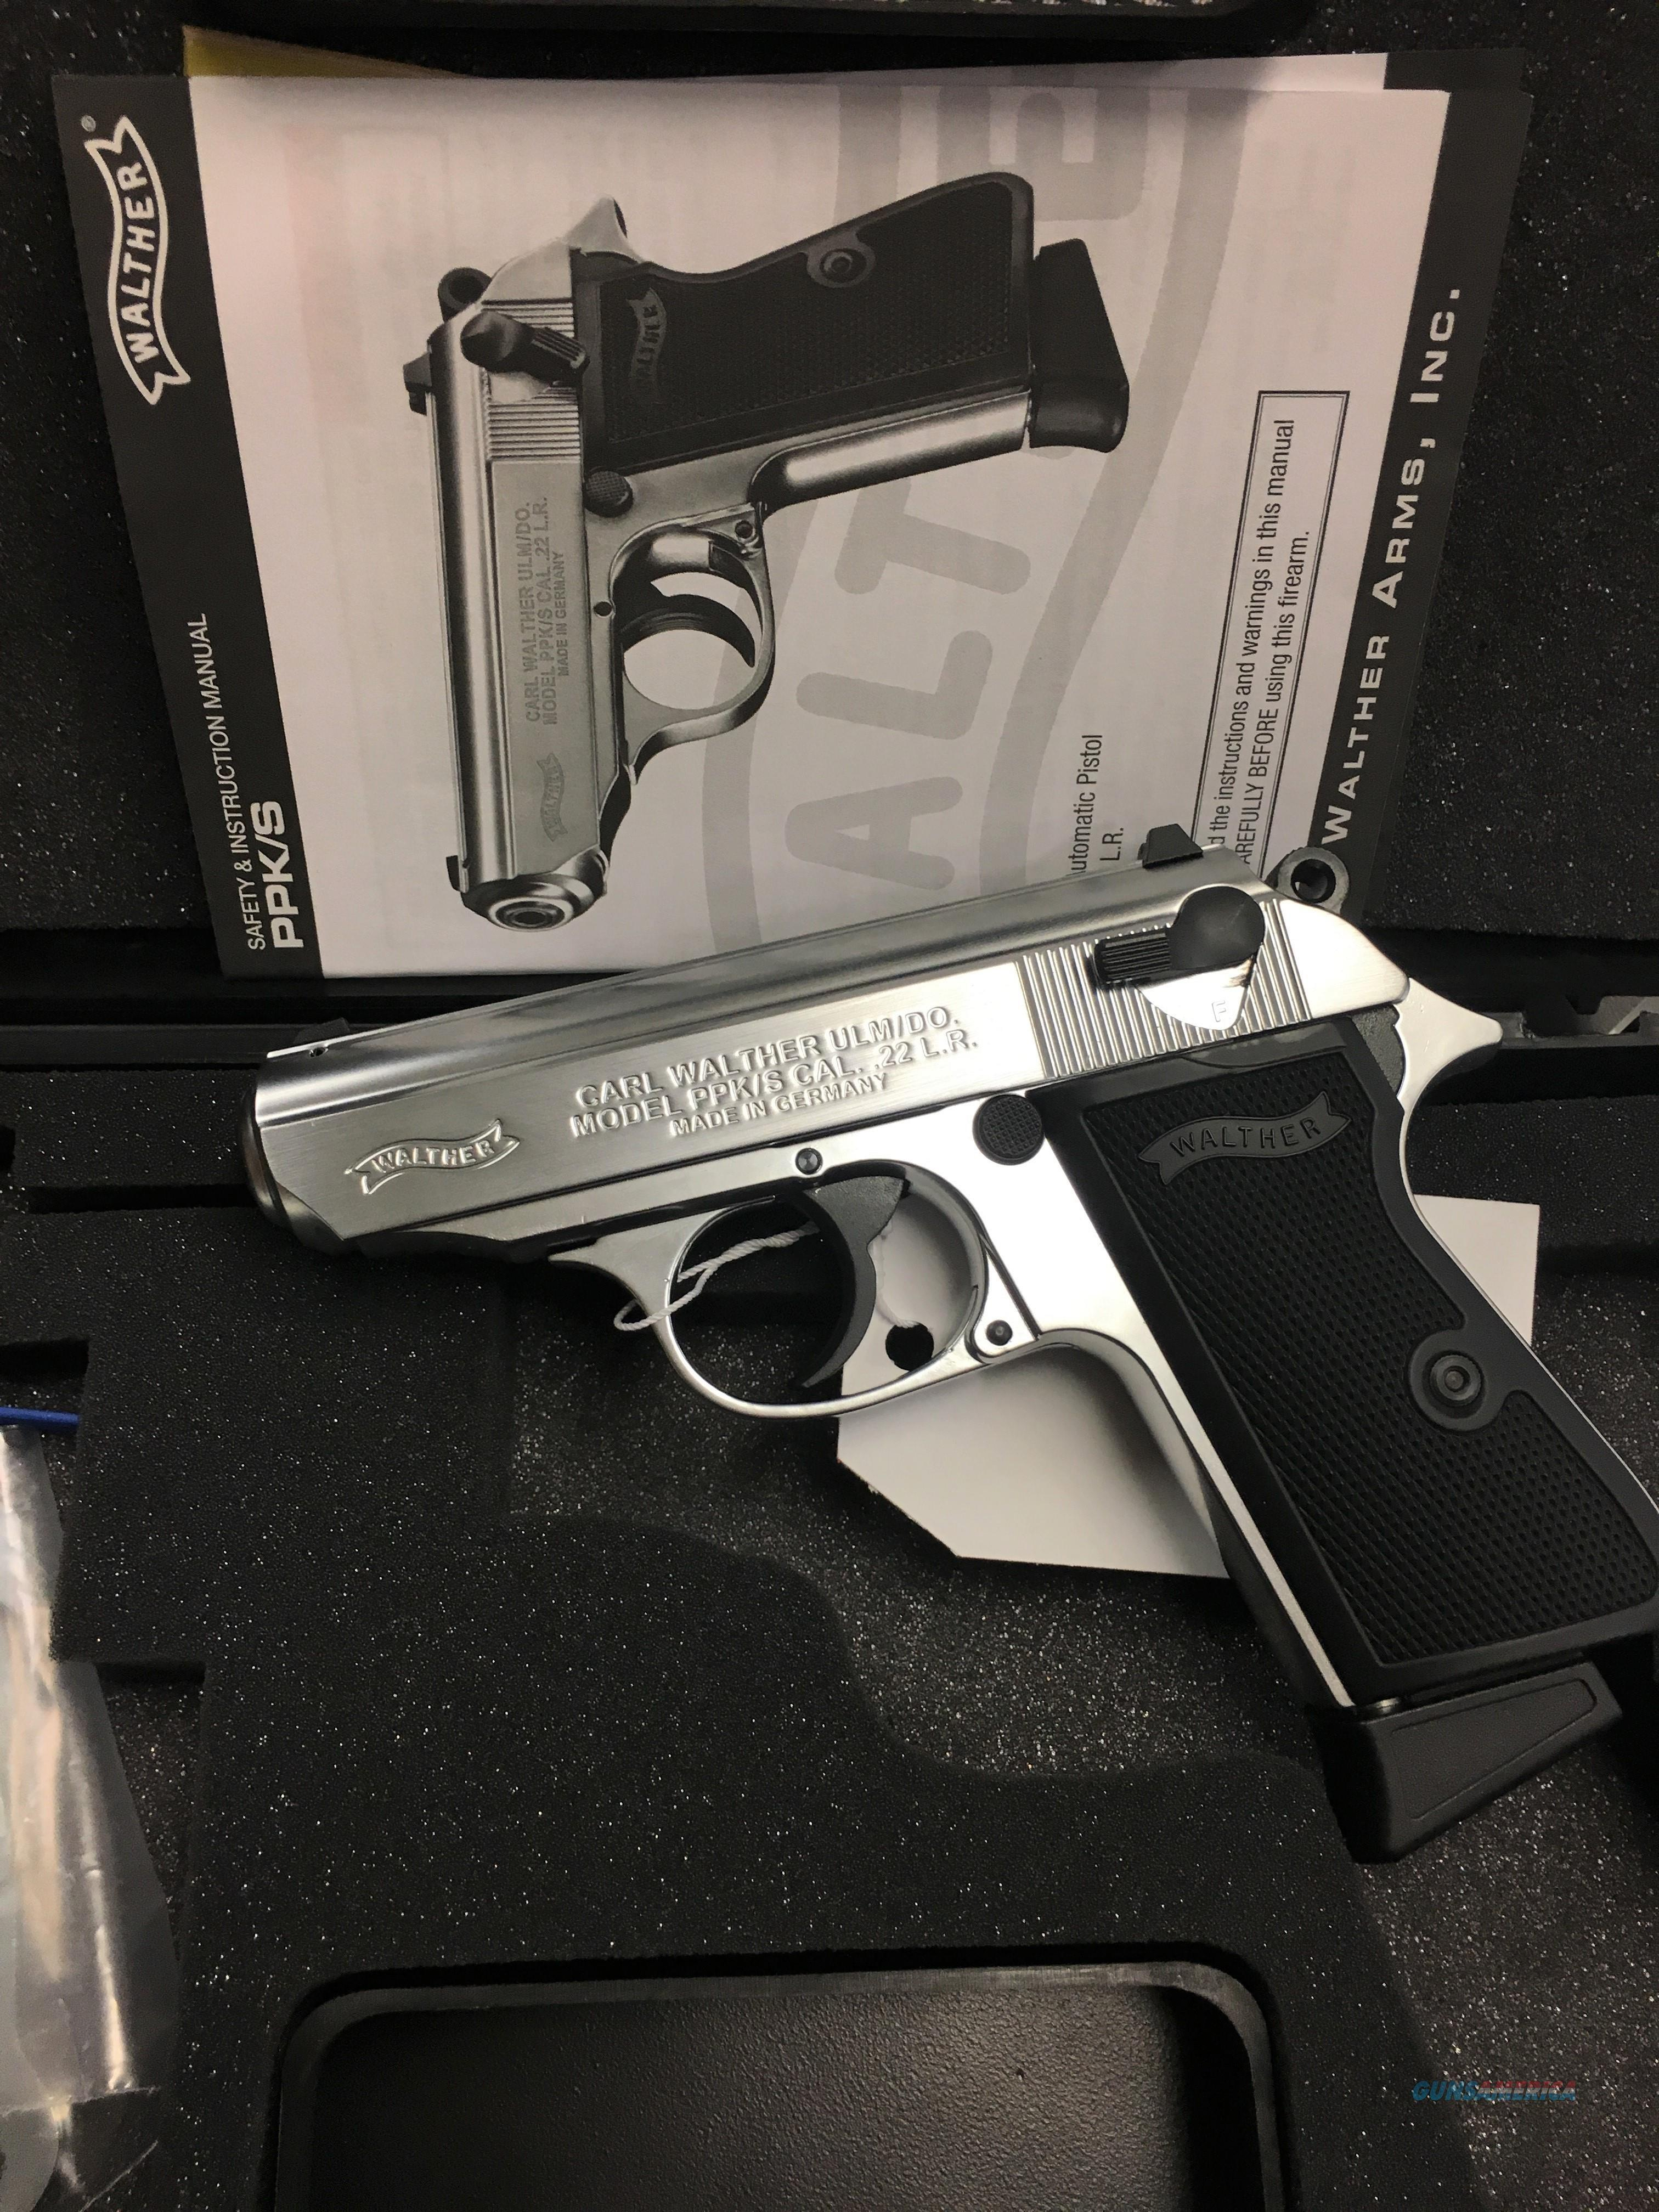 NEW!!! WALTHER PPKS STAINLESS .22LR!  Guns > Pistols > Walther Pistols > Post WWII > PPK Series